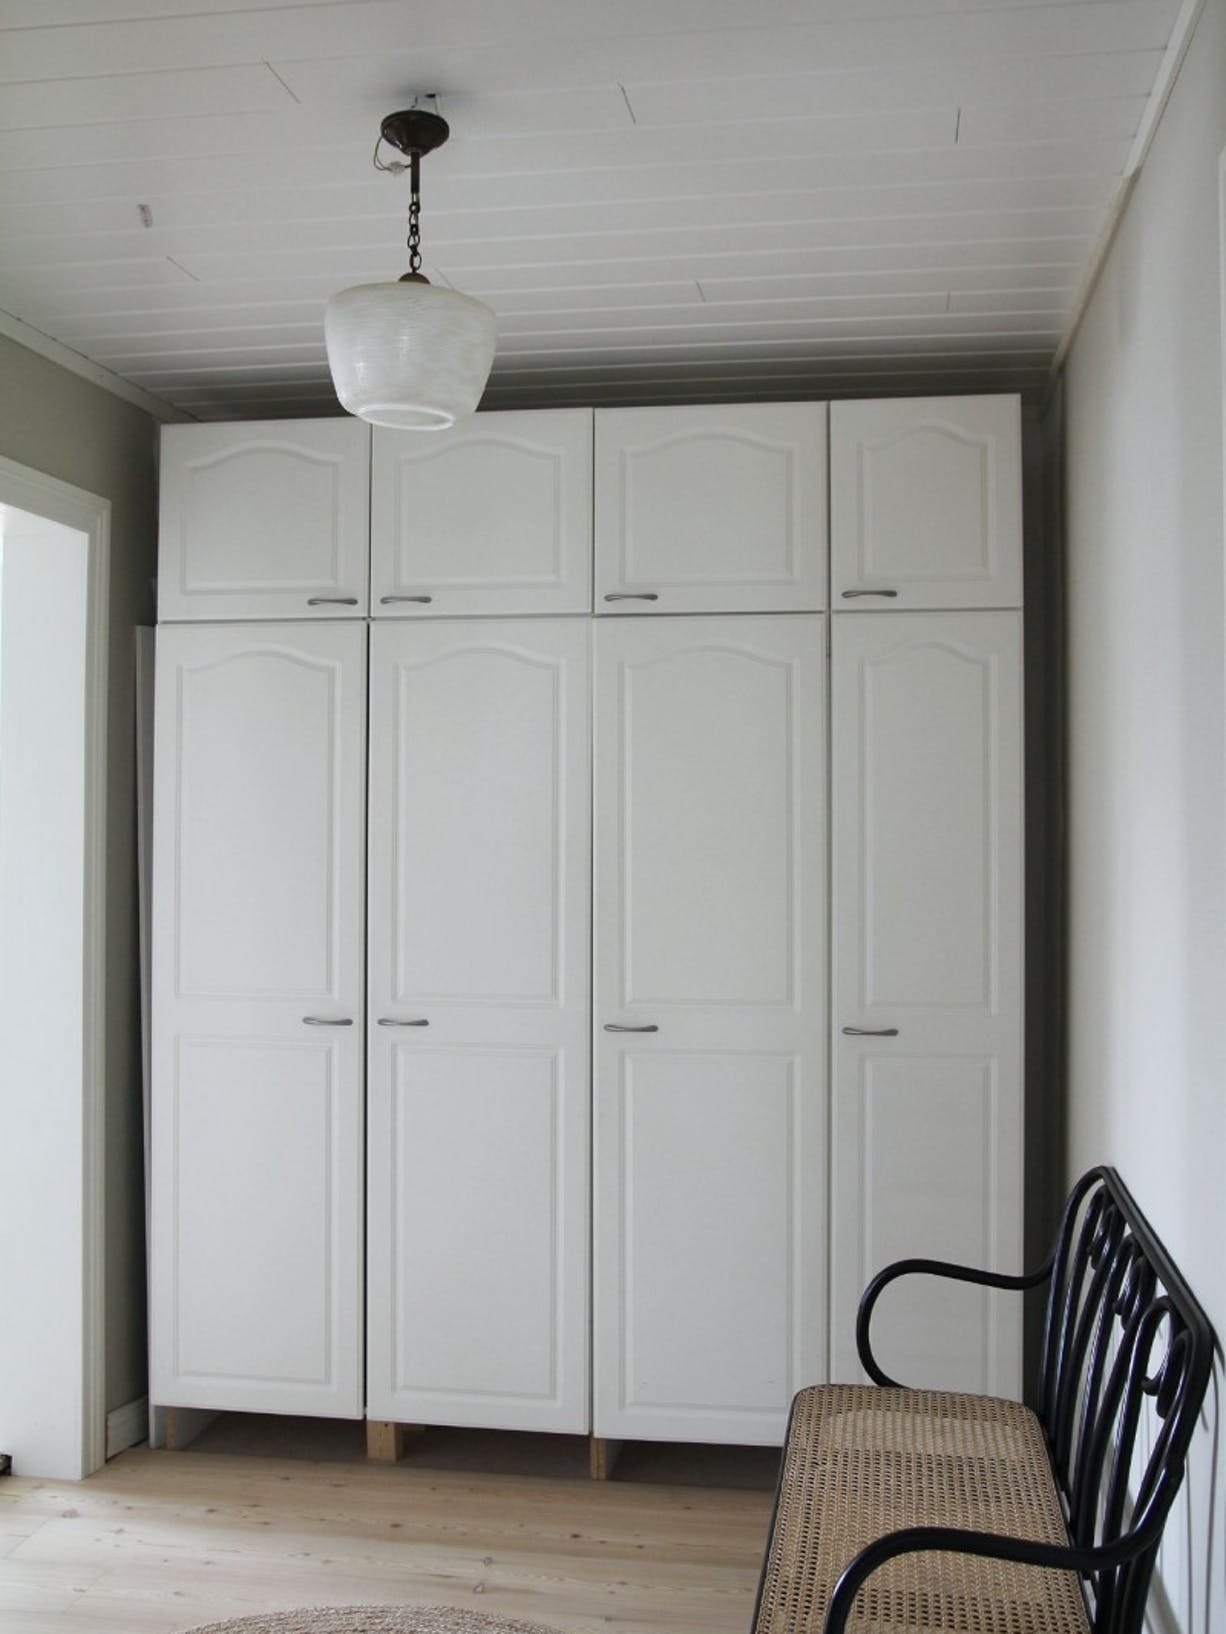 How to update storage cabinets without replacing them   Before lmage   Tikkurila